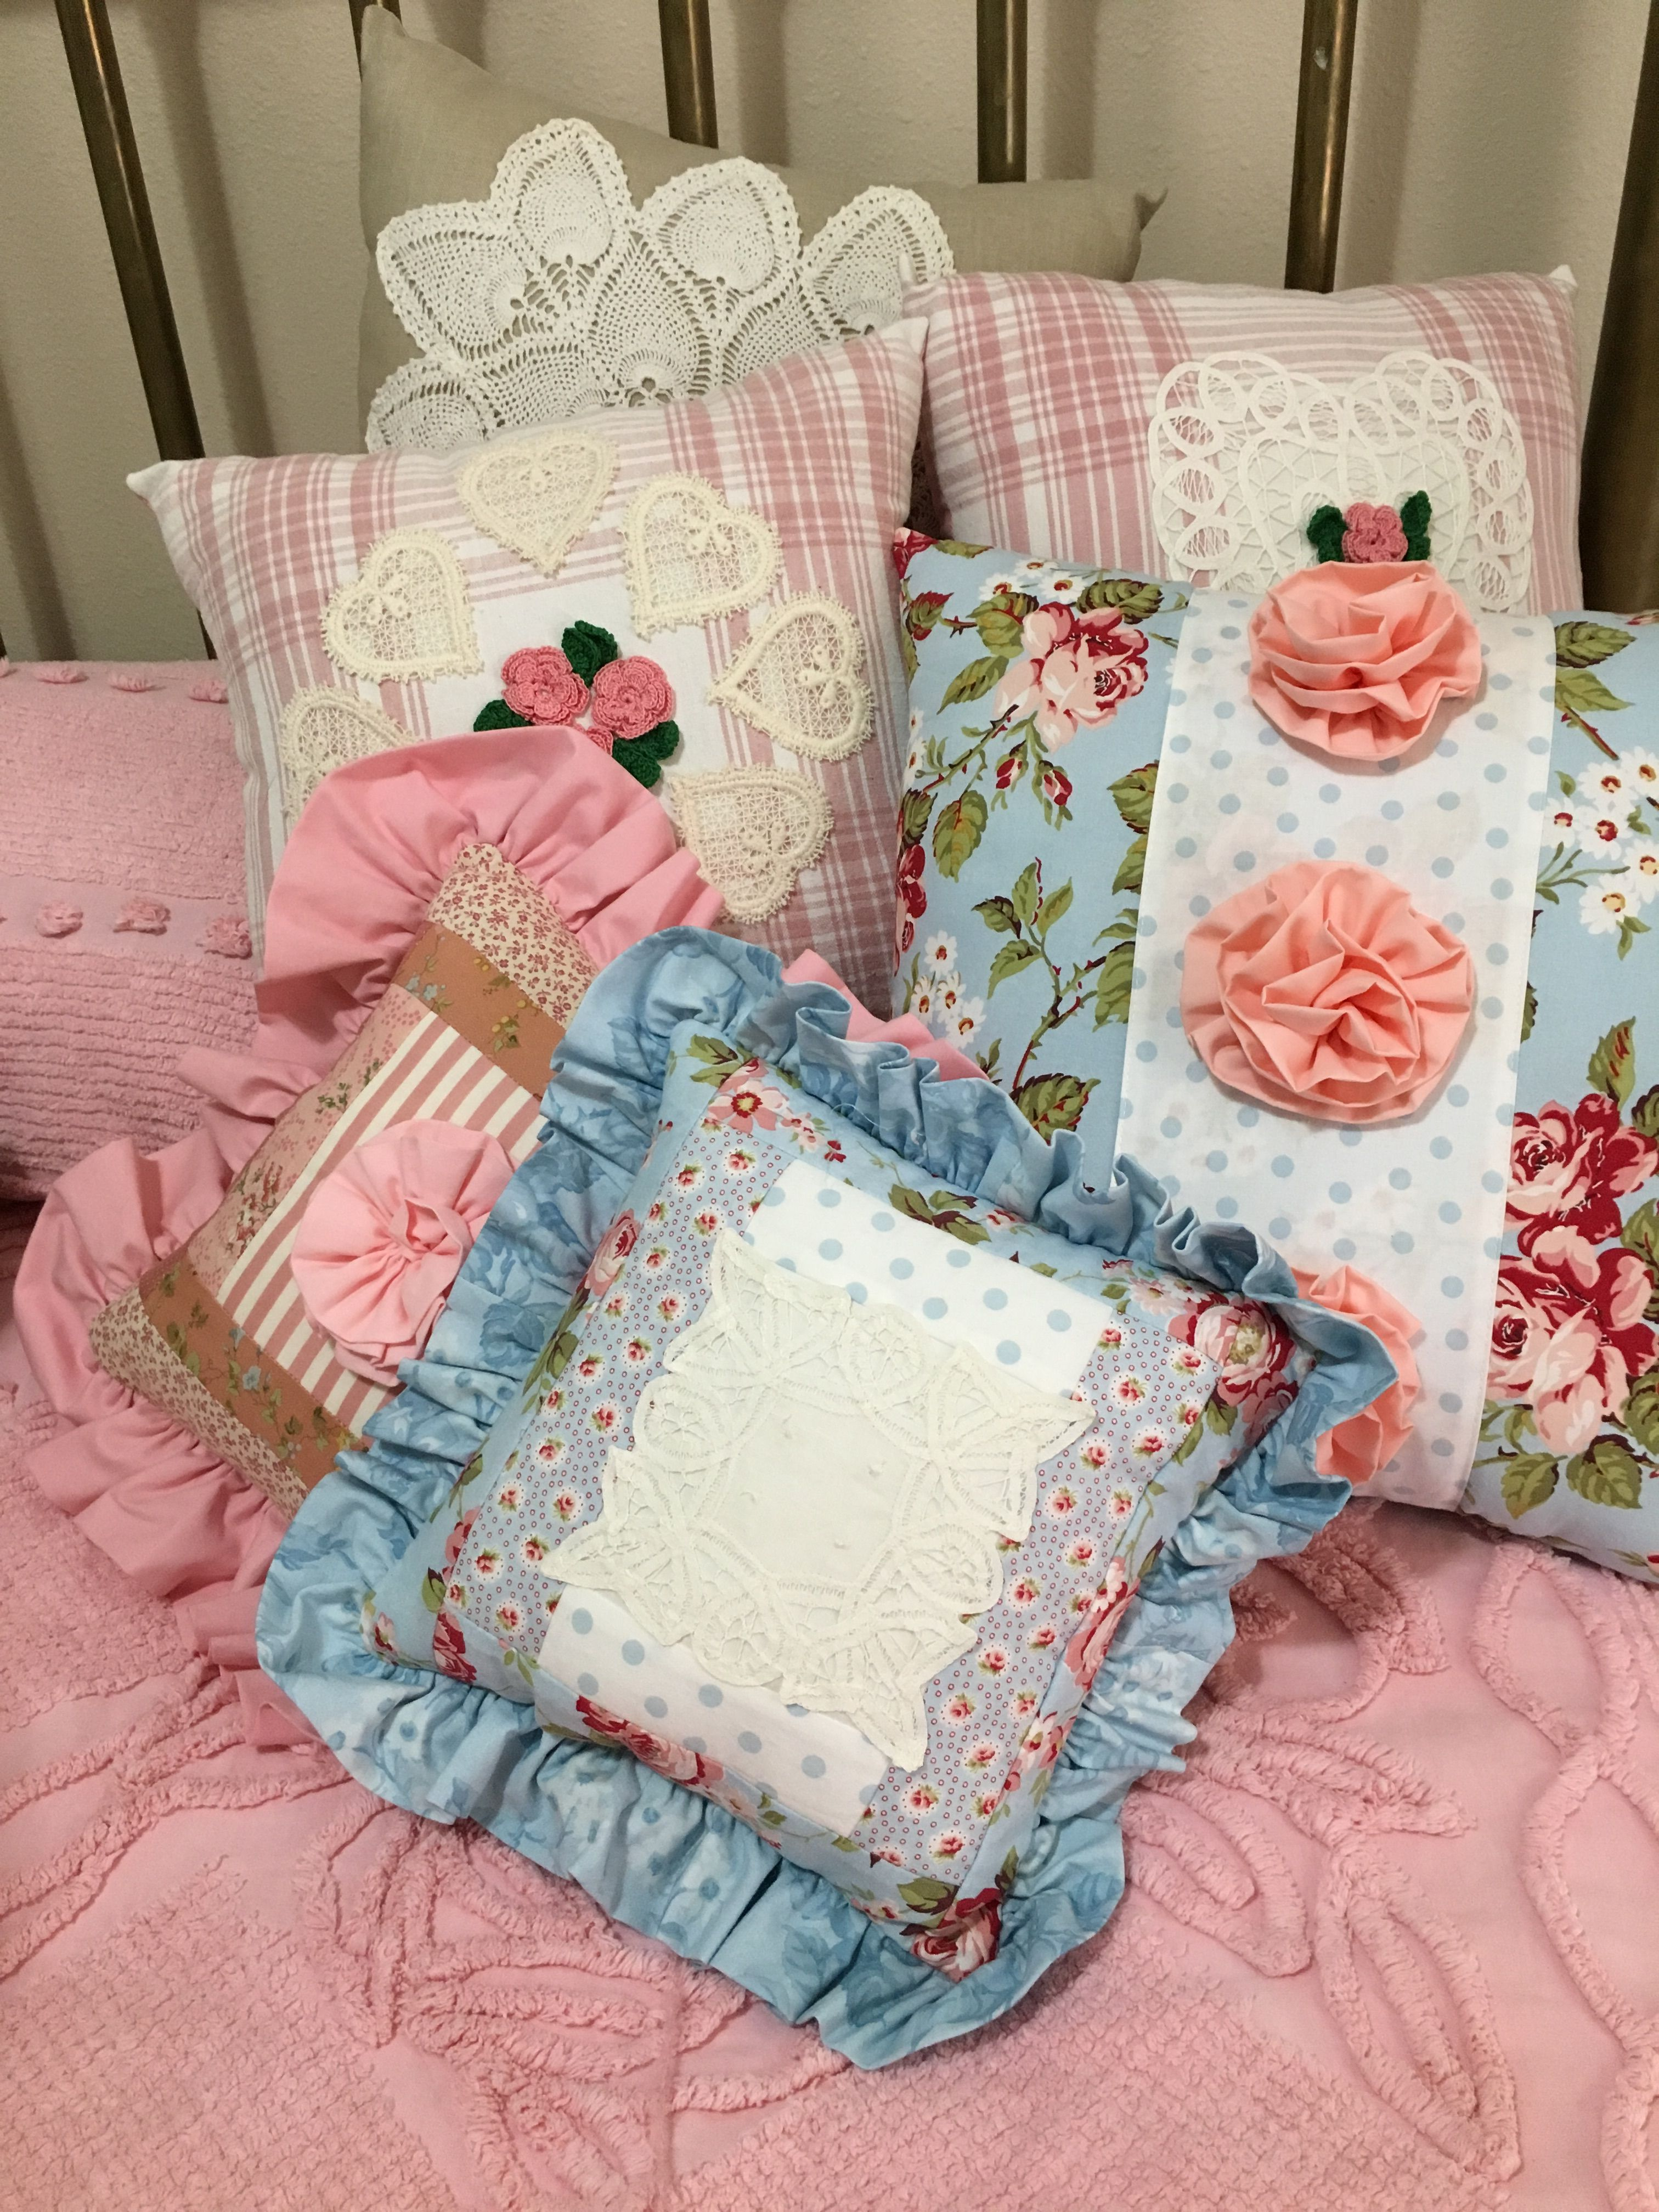 Pillows featuring some recycled linens. Contact me for